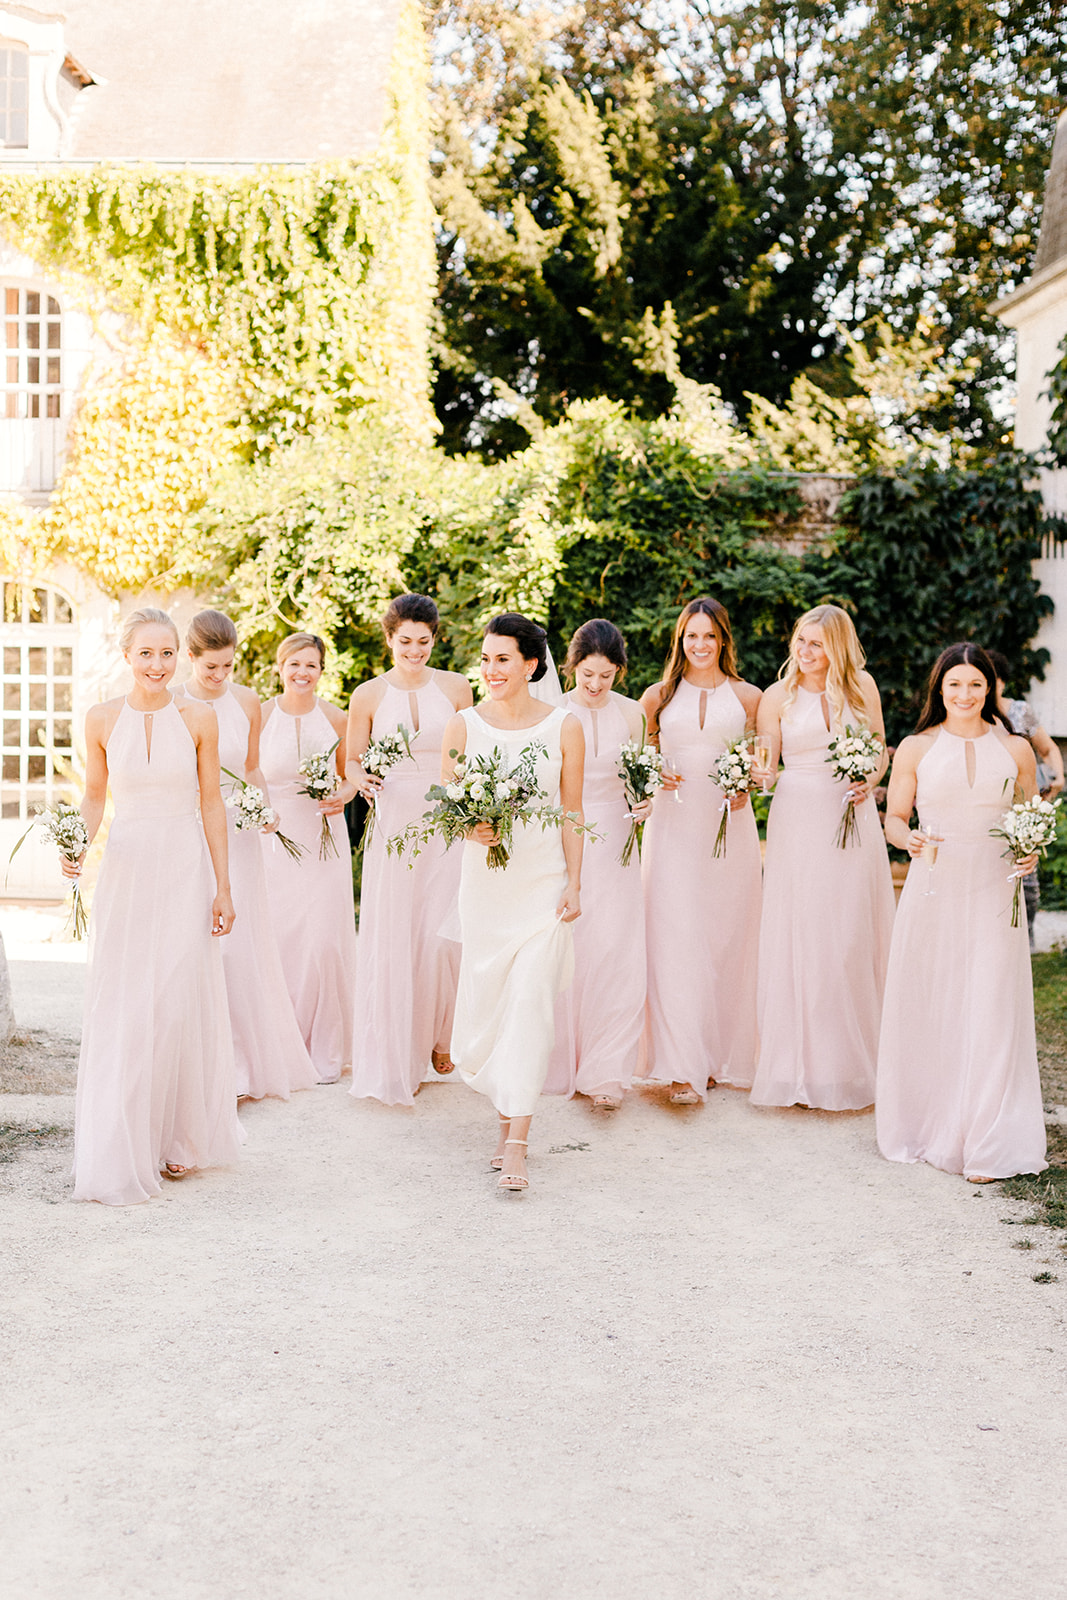 French Chateau Wedding, Events by Reagan, France Wedding, Destination Wedding Planner, Bride, bridesmaids, pink bridesmaid dress